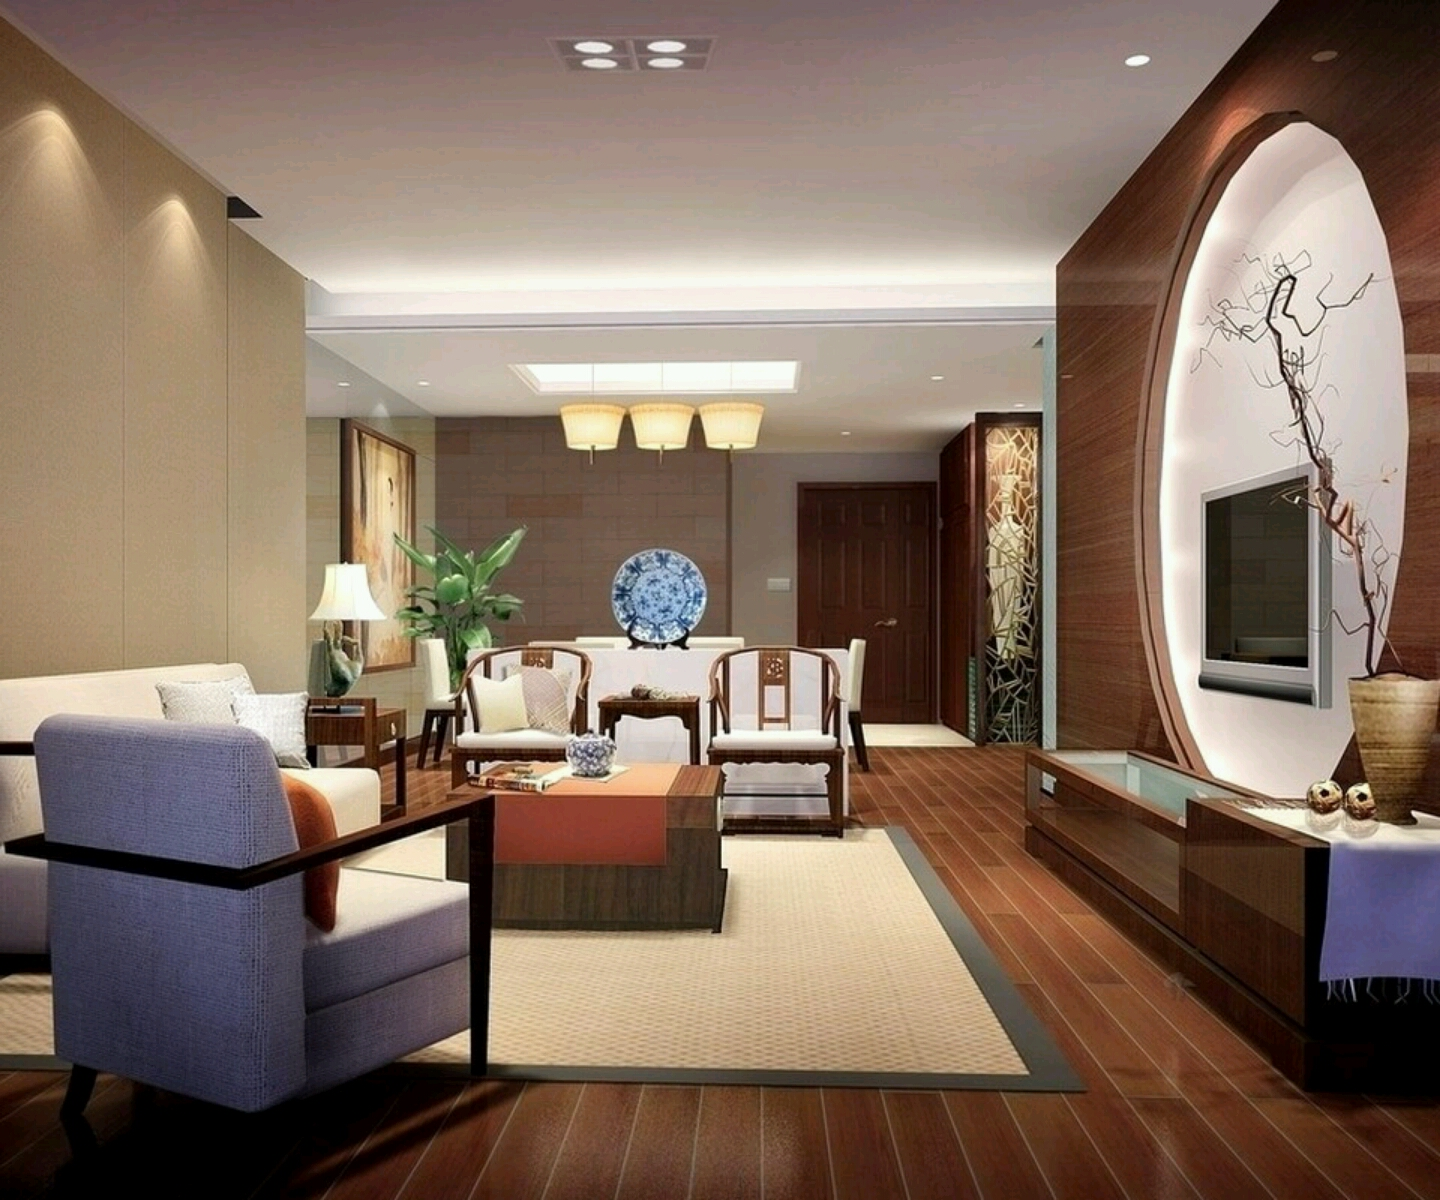 Luxury homes interior decoration living room designs ideas for Interior decoration ideas for small living room